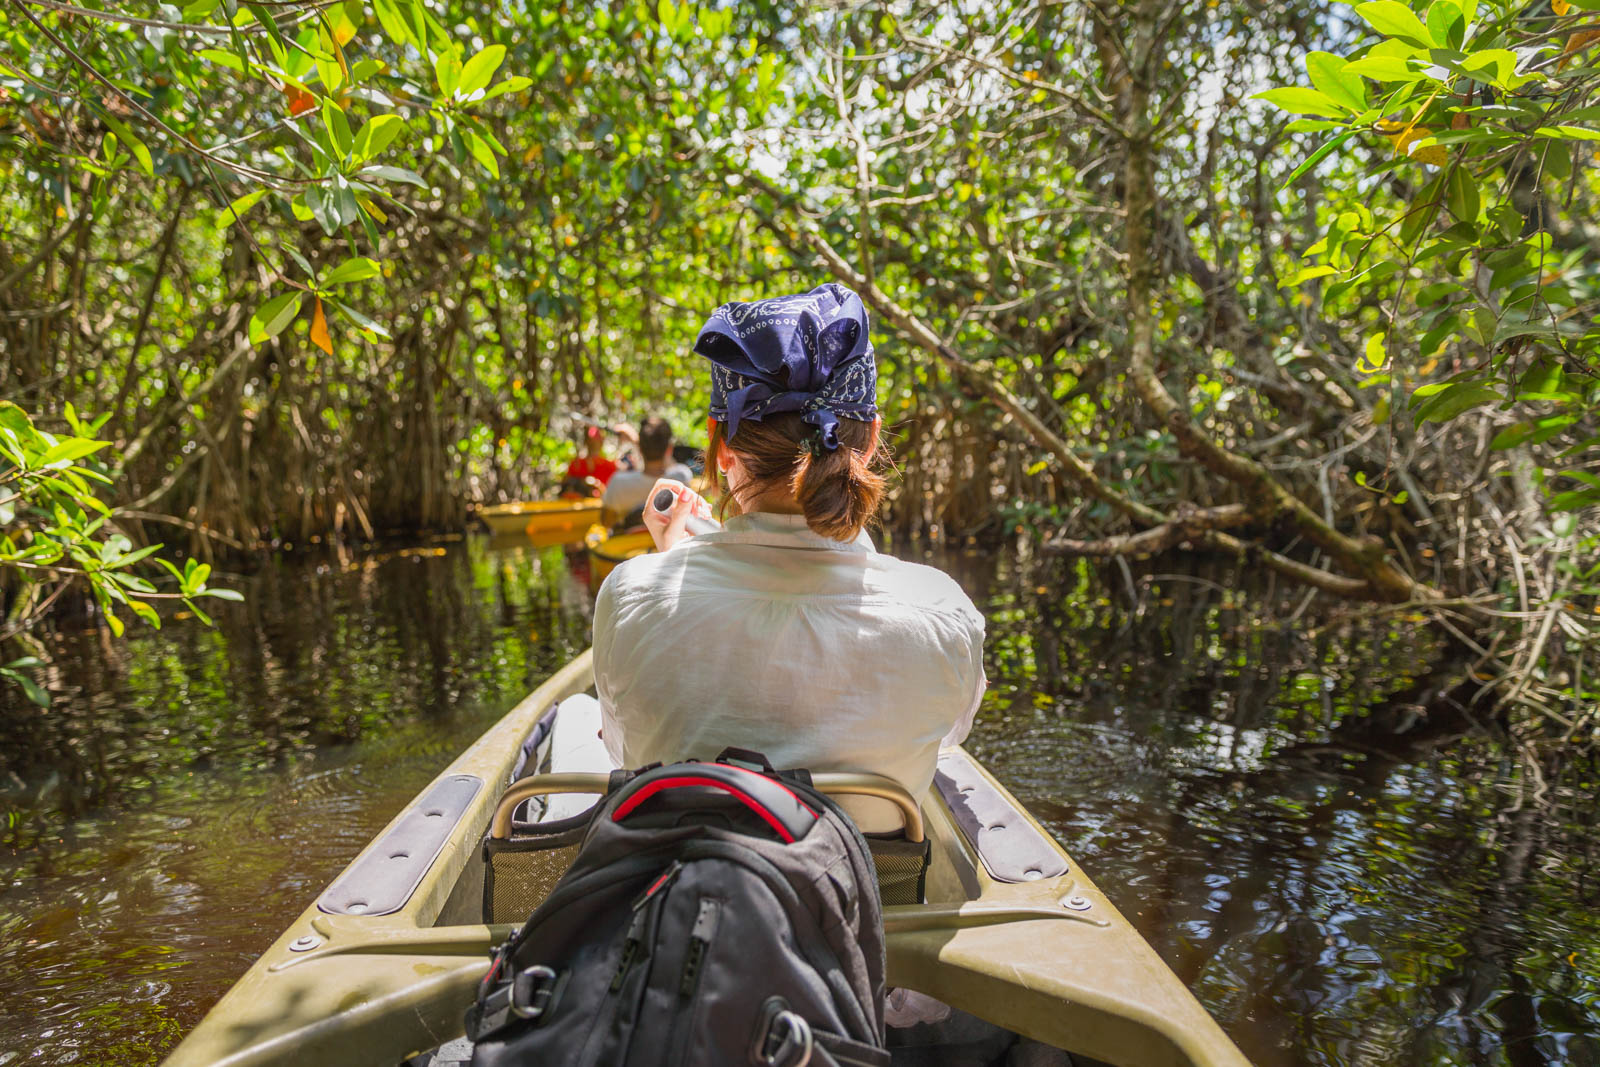 Kayaking in a mangrove forest of Everglades National Park.